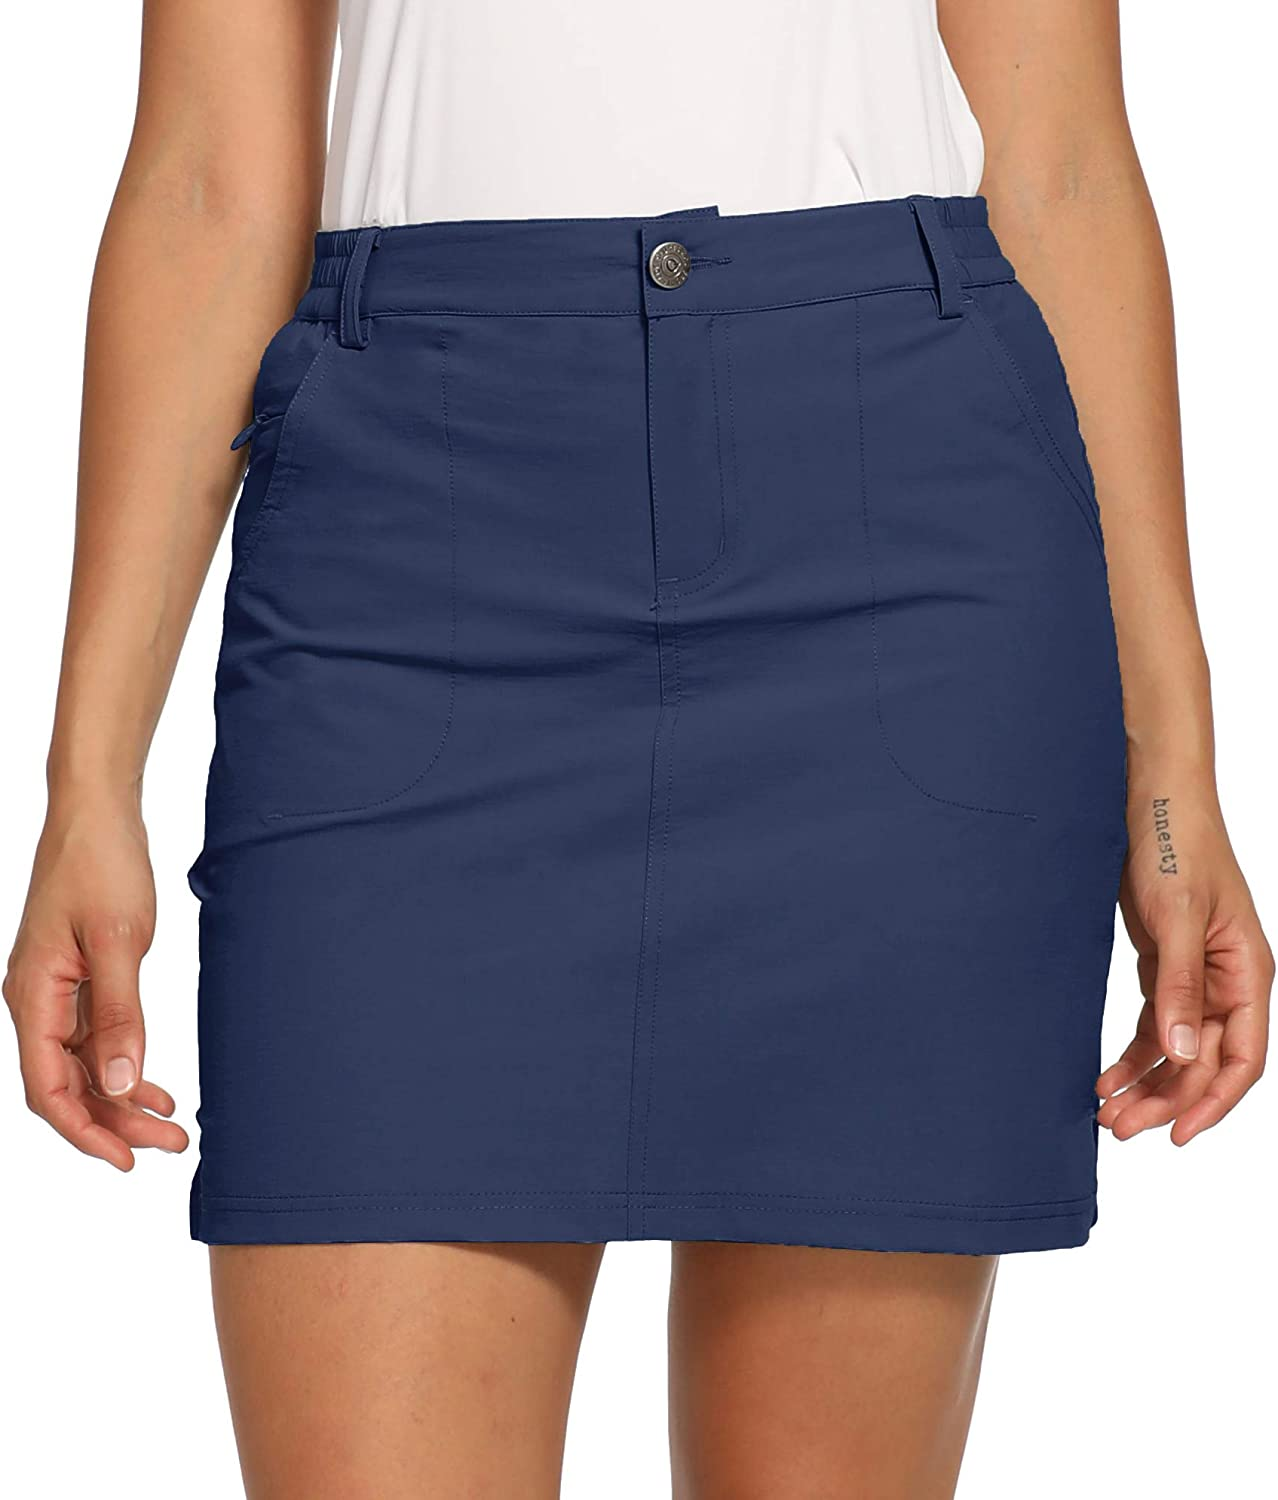 Discount mail order CQC Women's Outdoor Max 66% OFF UPF 50+ Golf Skort Buil Casual Skirts Active